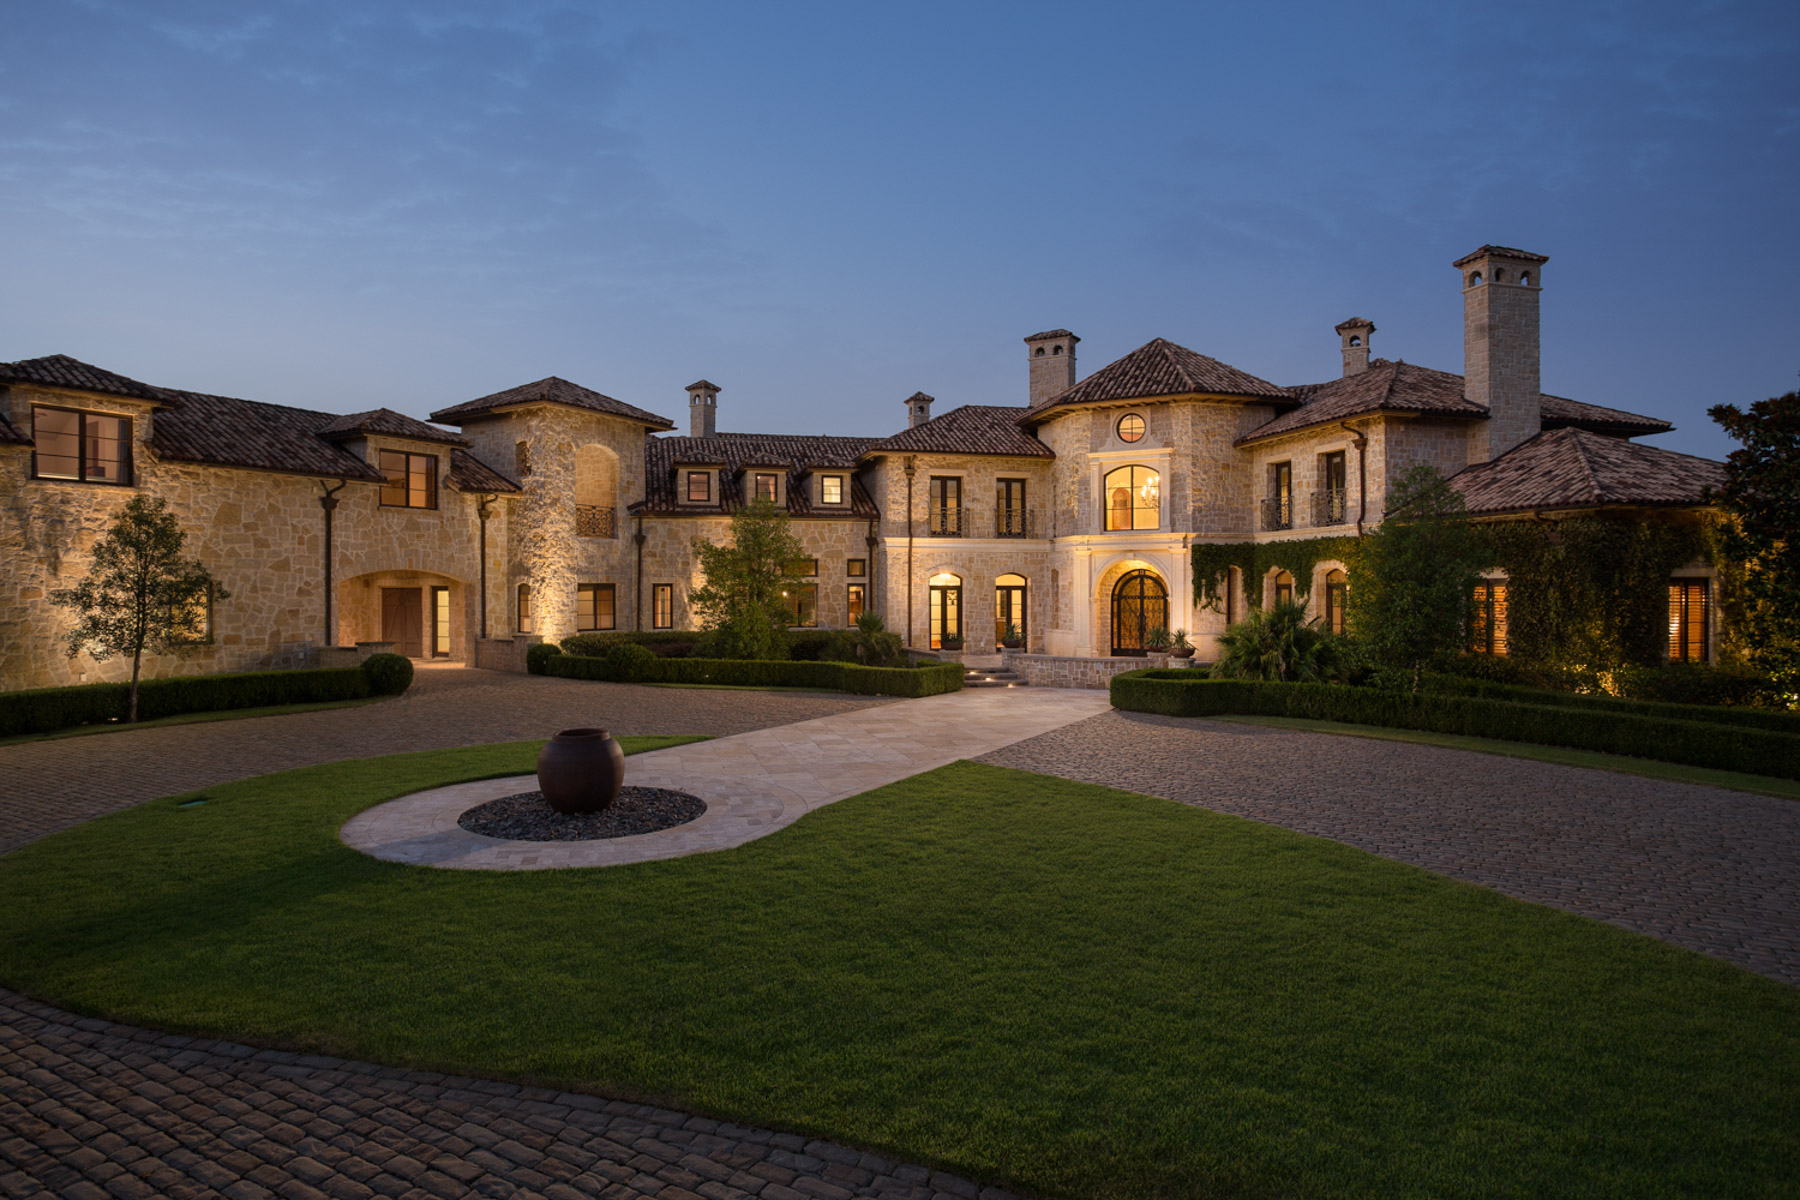 Single Family Home for Sale at Tuscan Inspired Home 3620 Ranchero Rd Dallas, Texas, 75236 United States